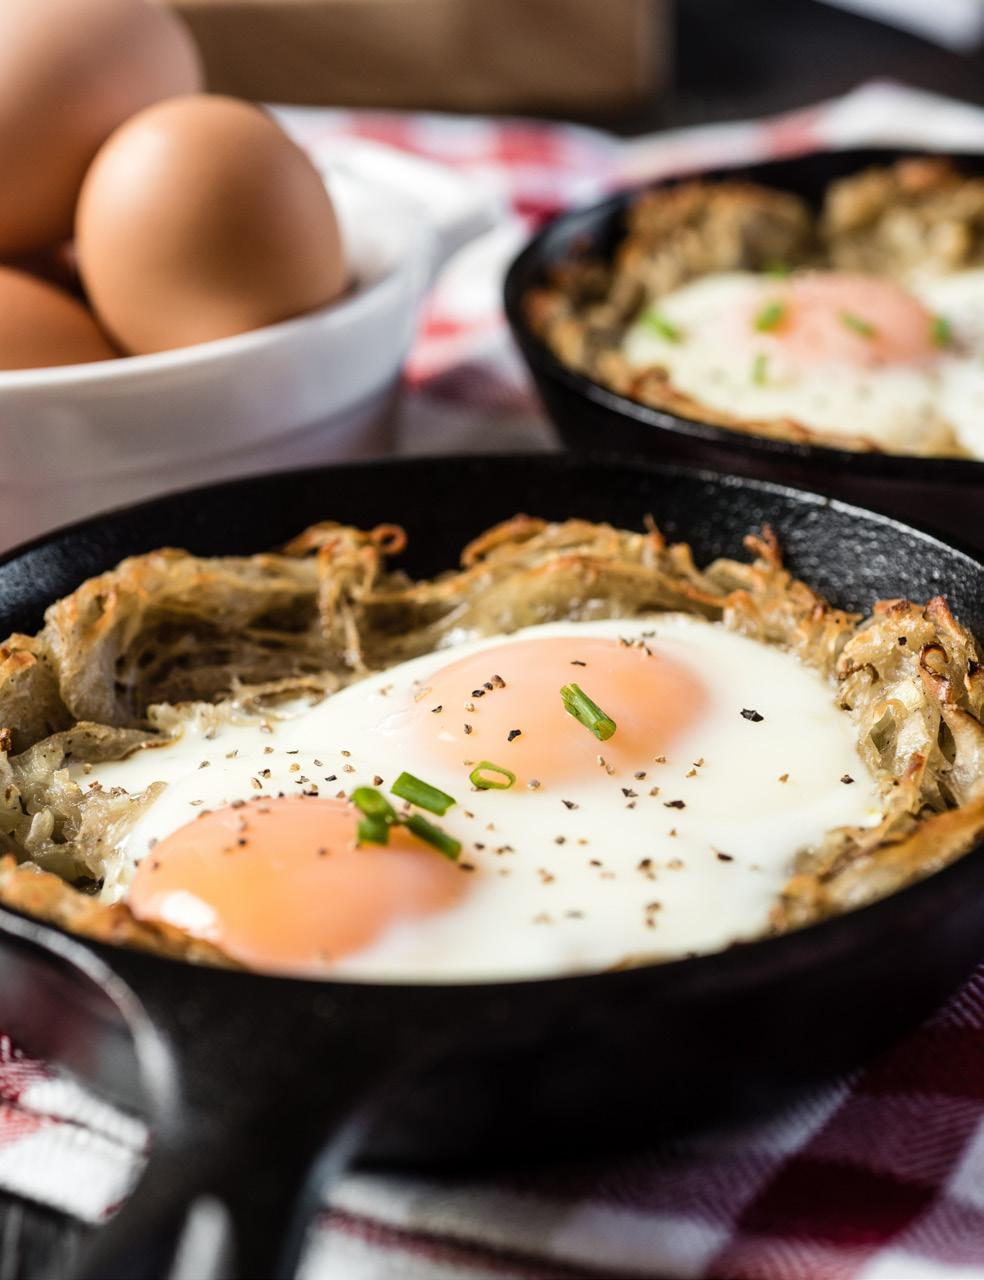 Potato and Egg Nests Serves: 1-2 1 large (10 ounces) russet potato 2 tablespoons finely chopped onion 1 tablespoon vegetable oil 1/4 teaspoon salt 1/4 teaspoon ground black pepper 2 large eggs